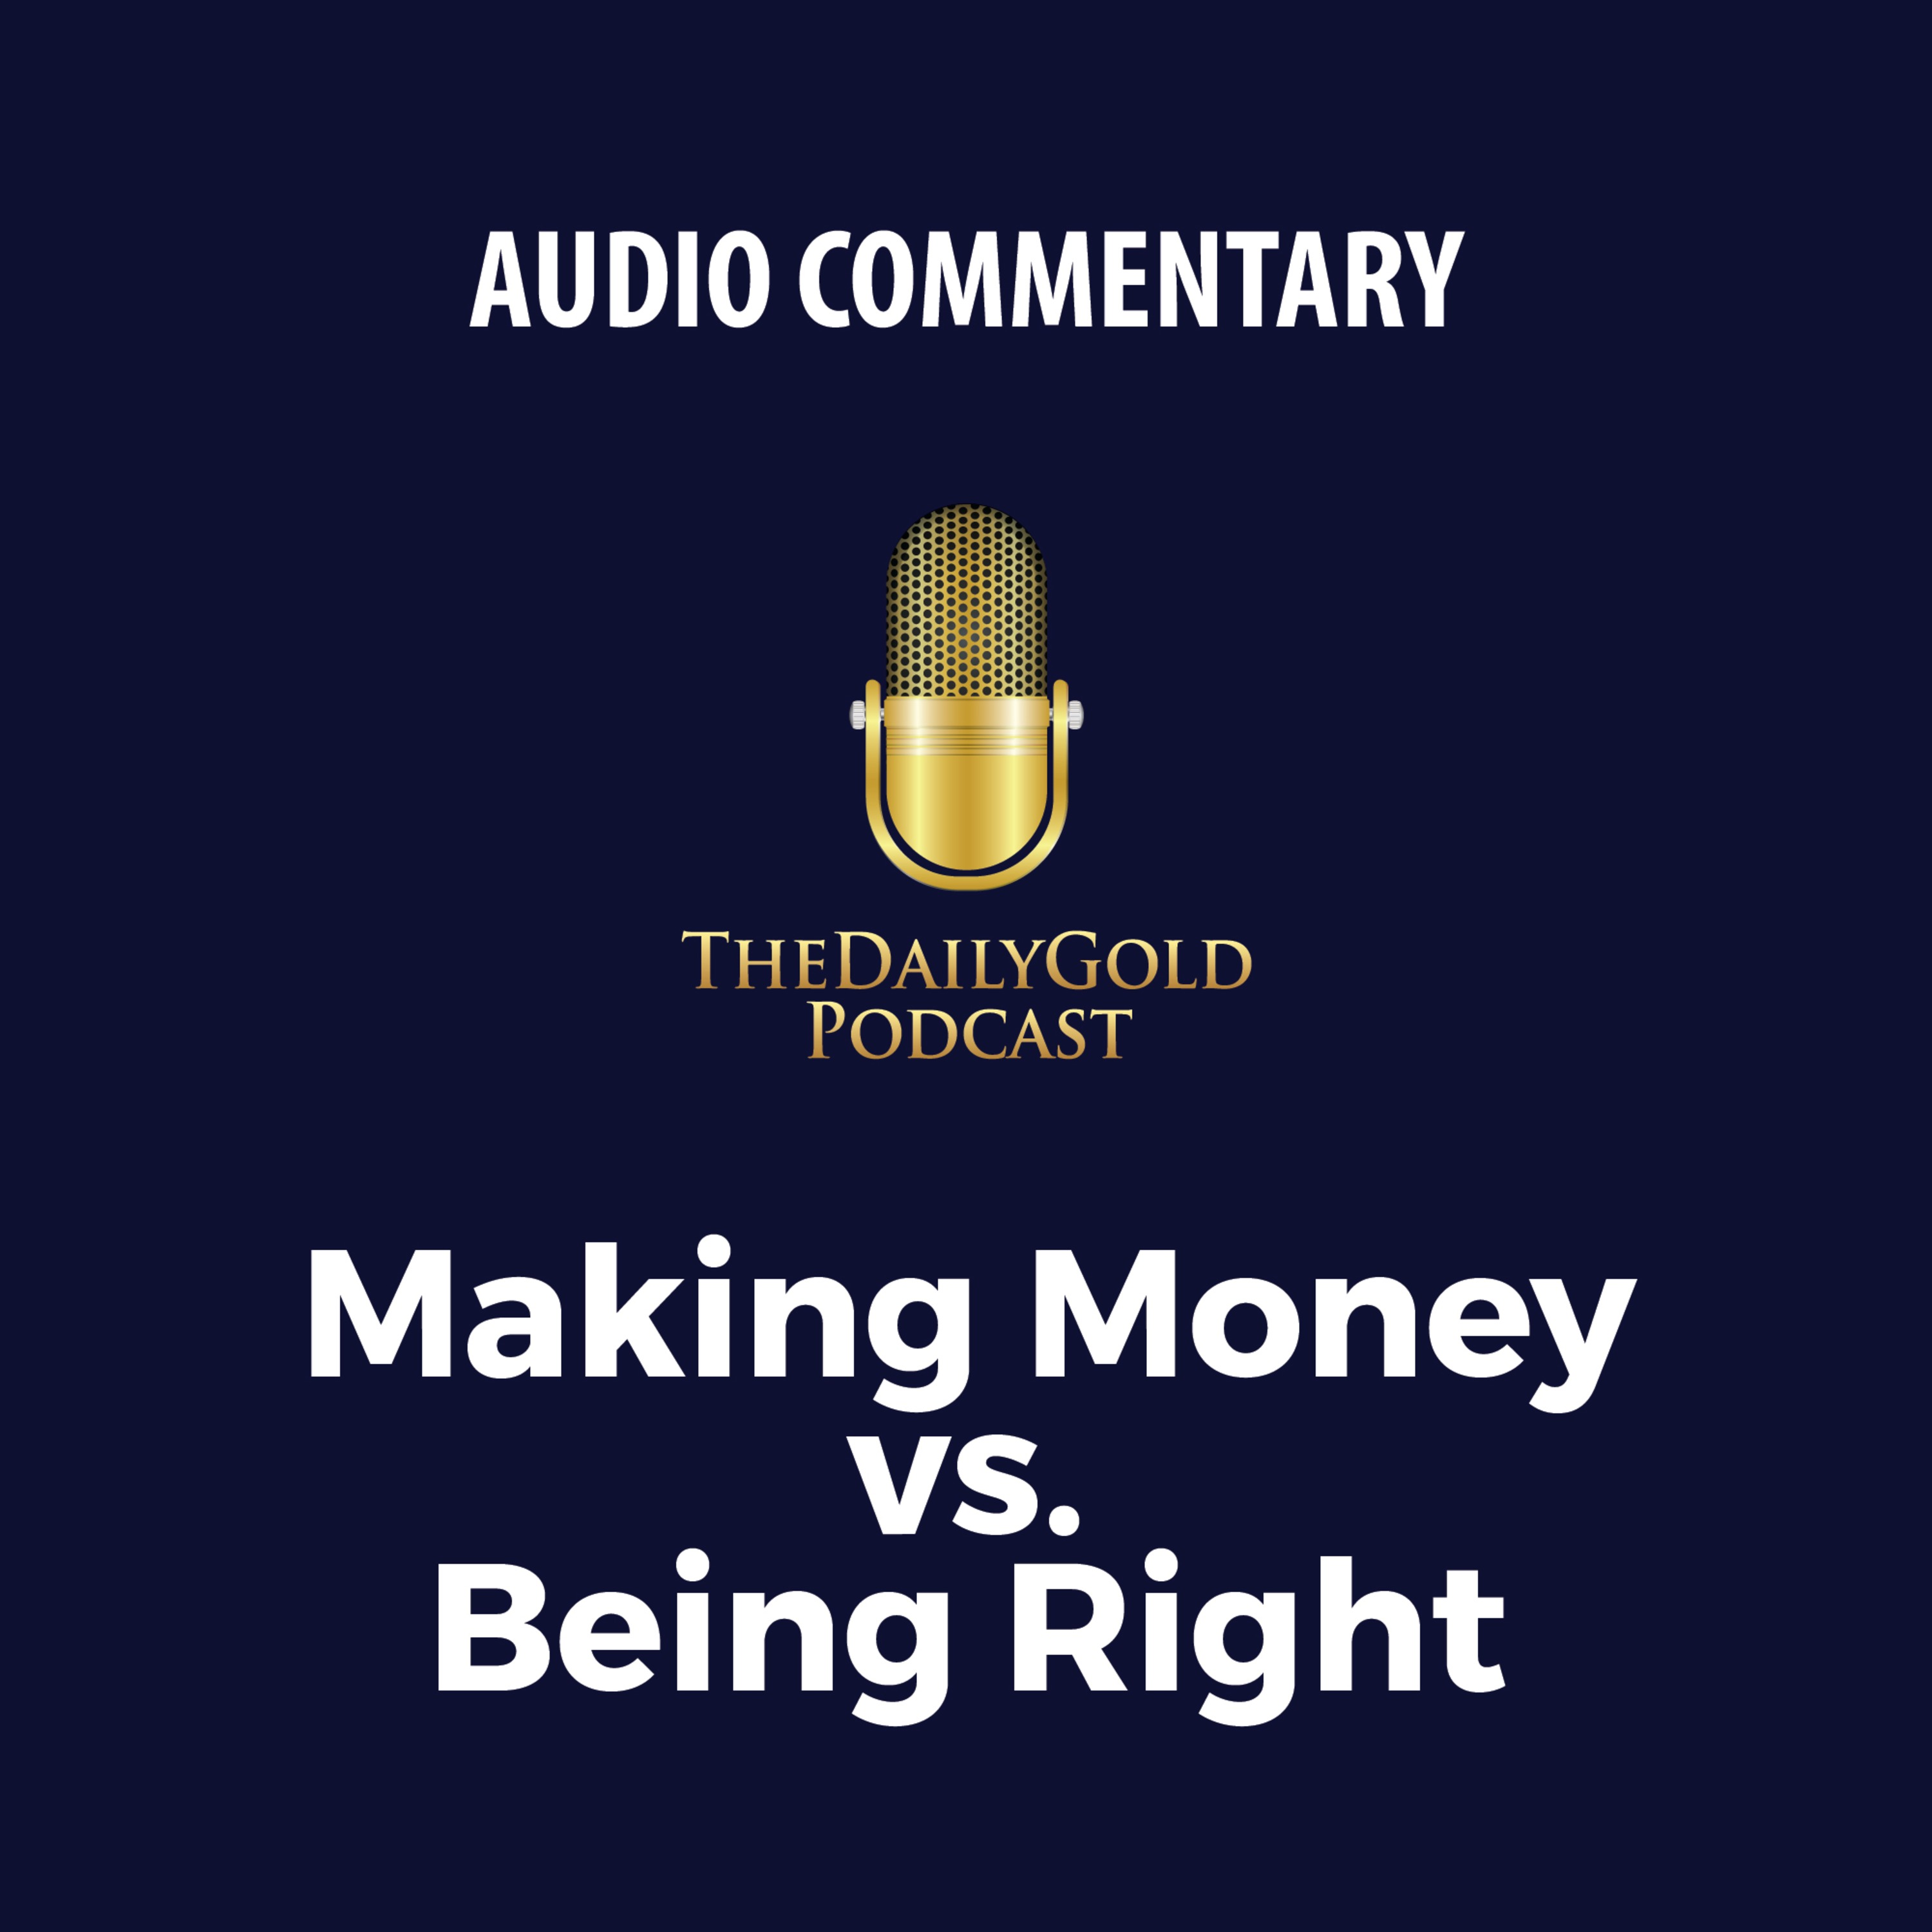 Making Money vs. Being Right